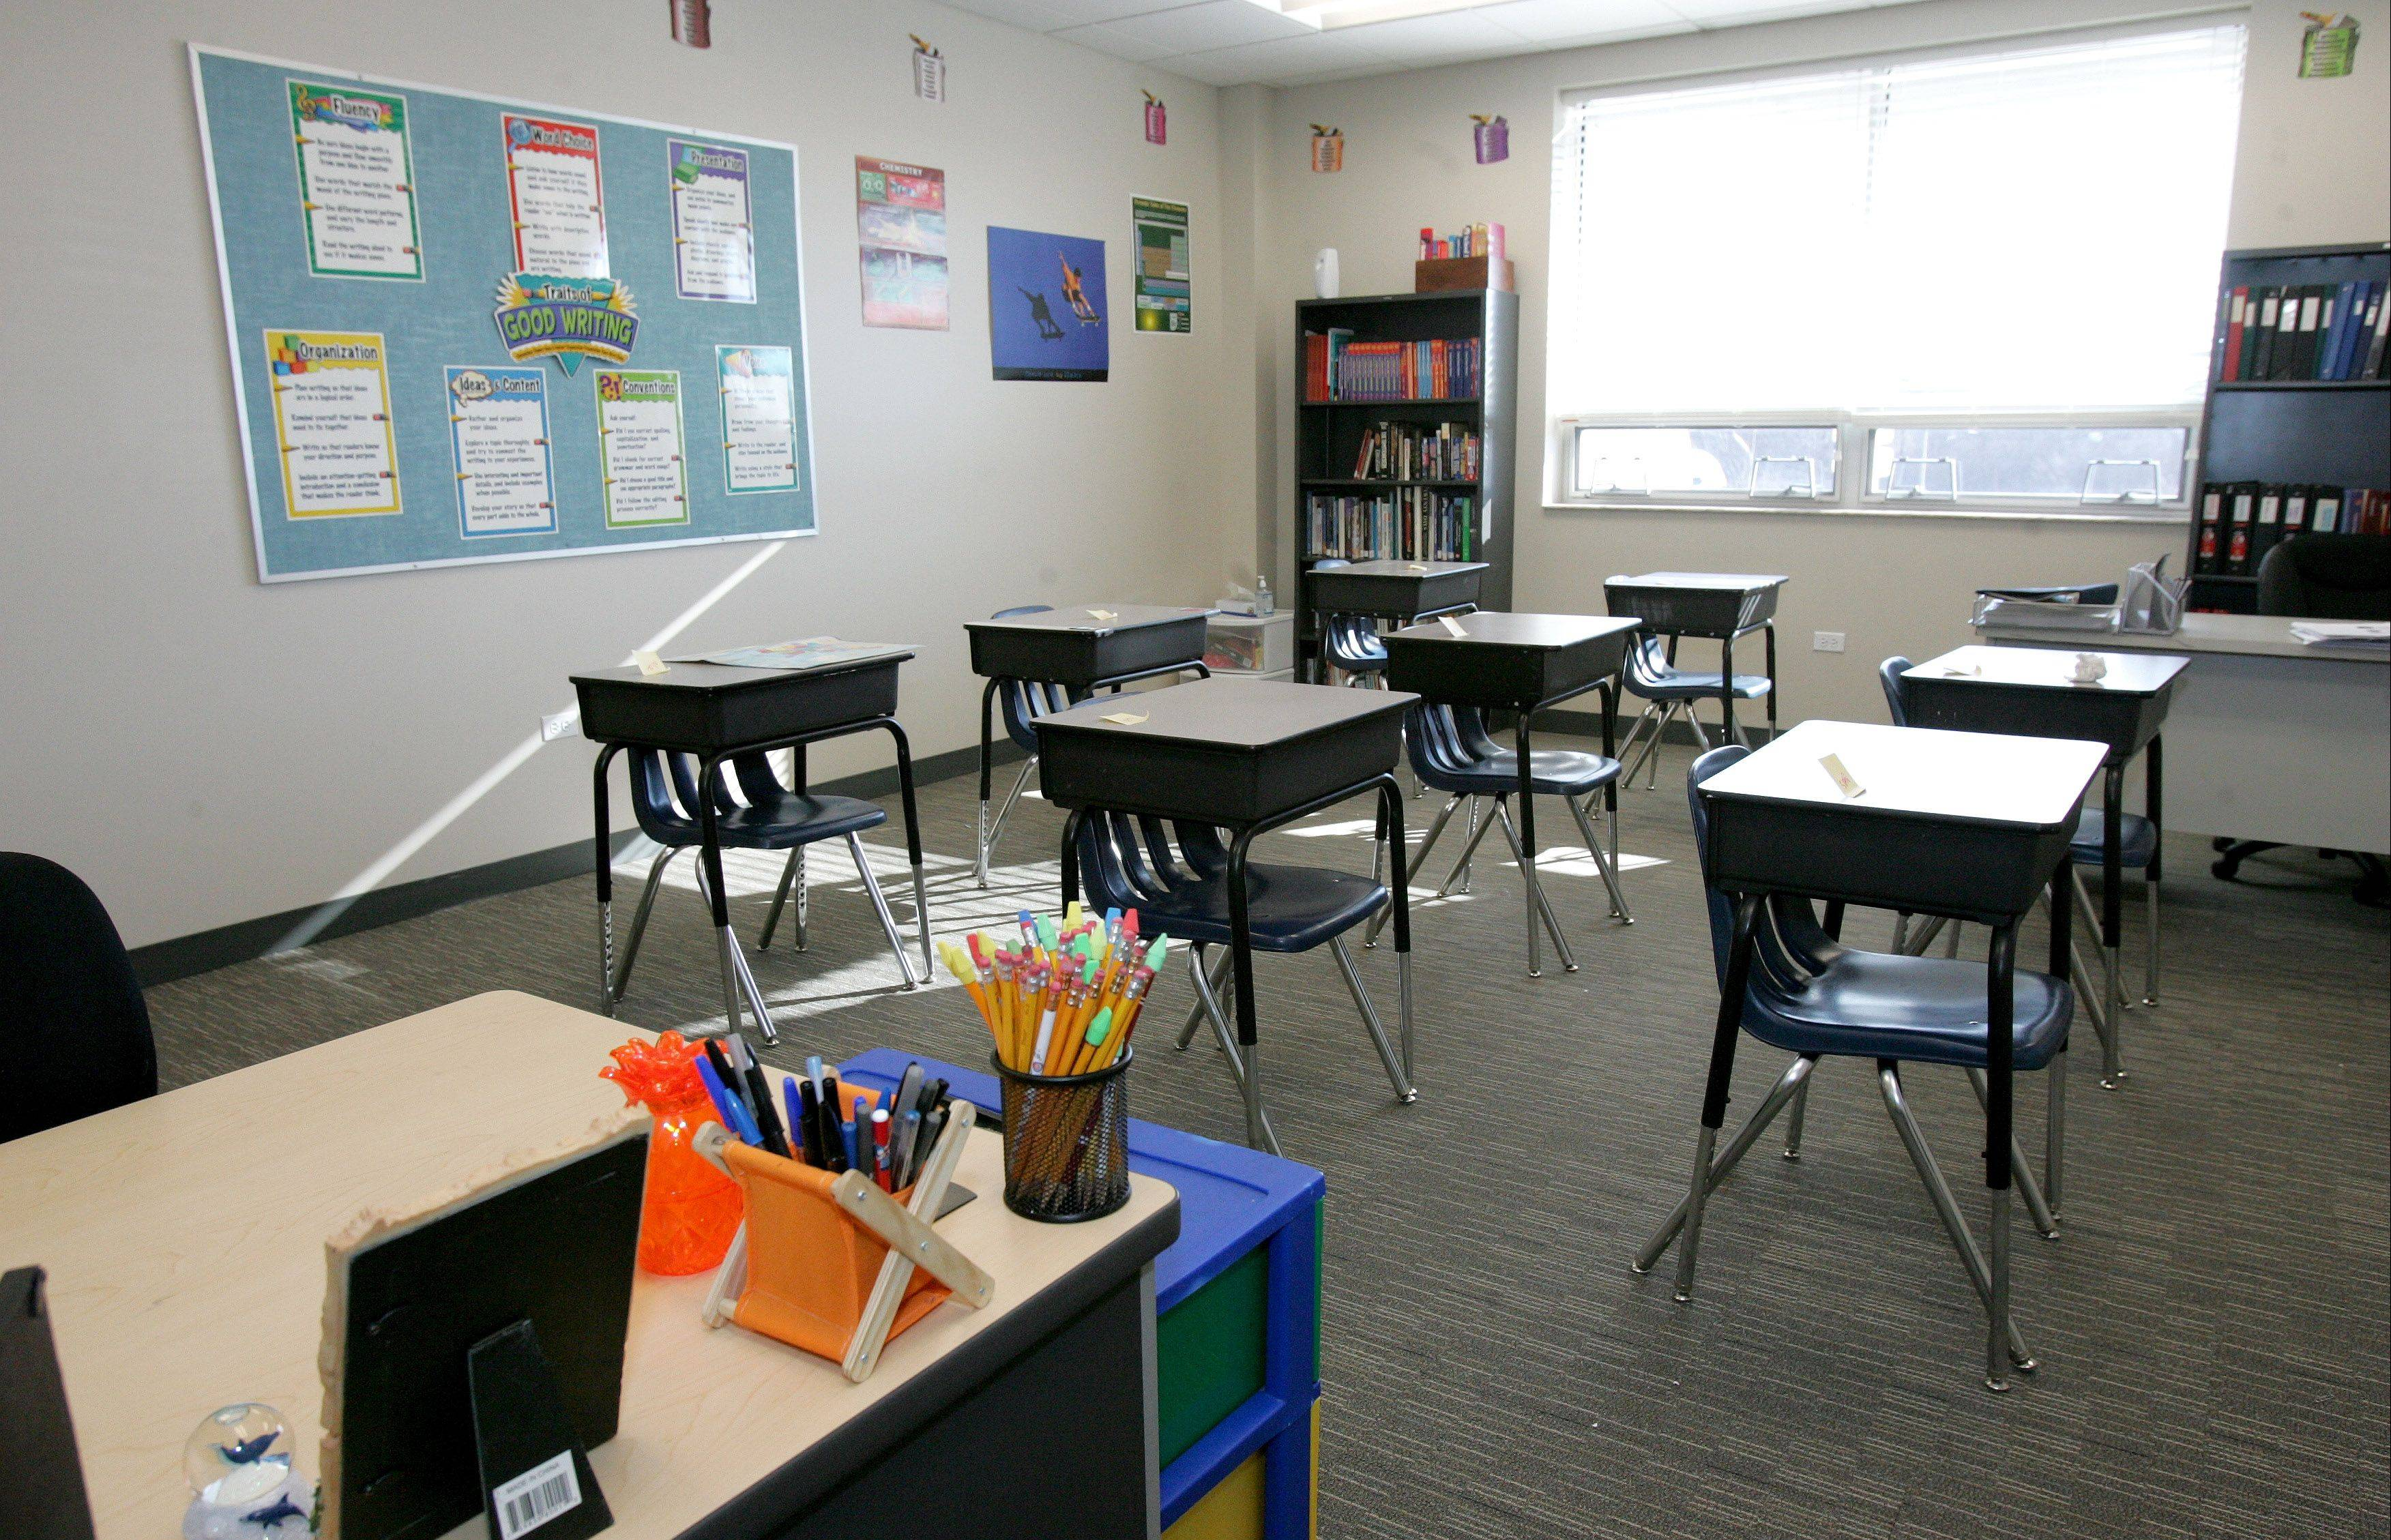 The school has 11 classrooms at its new location in Lombard, including this one for high school students.